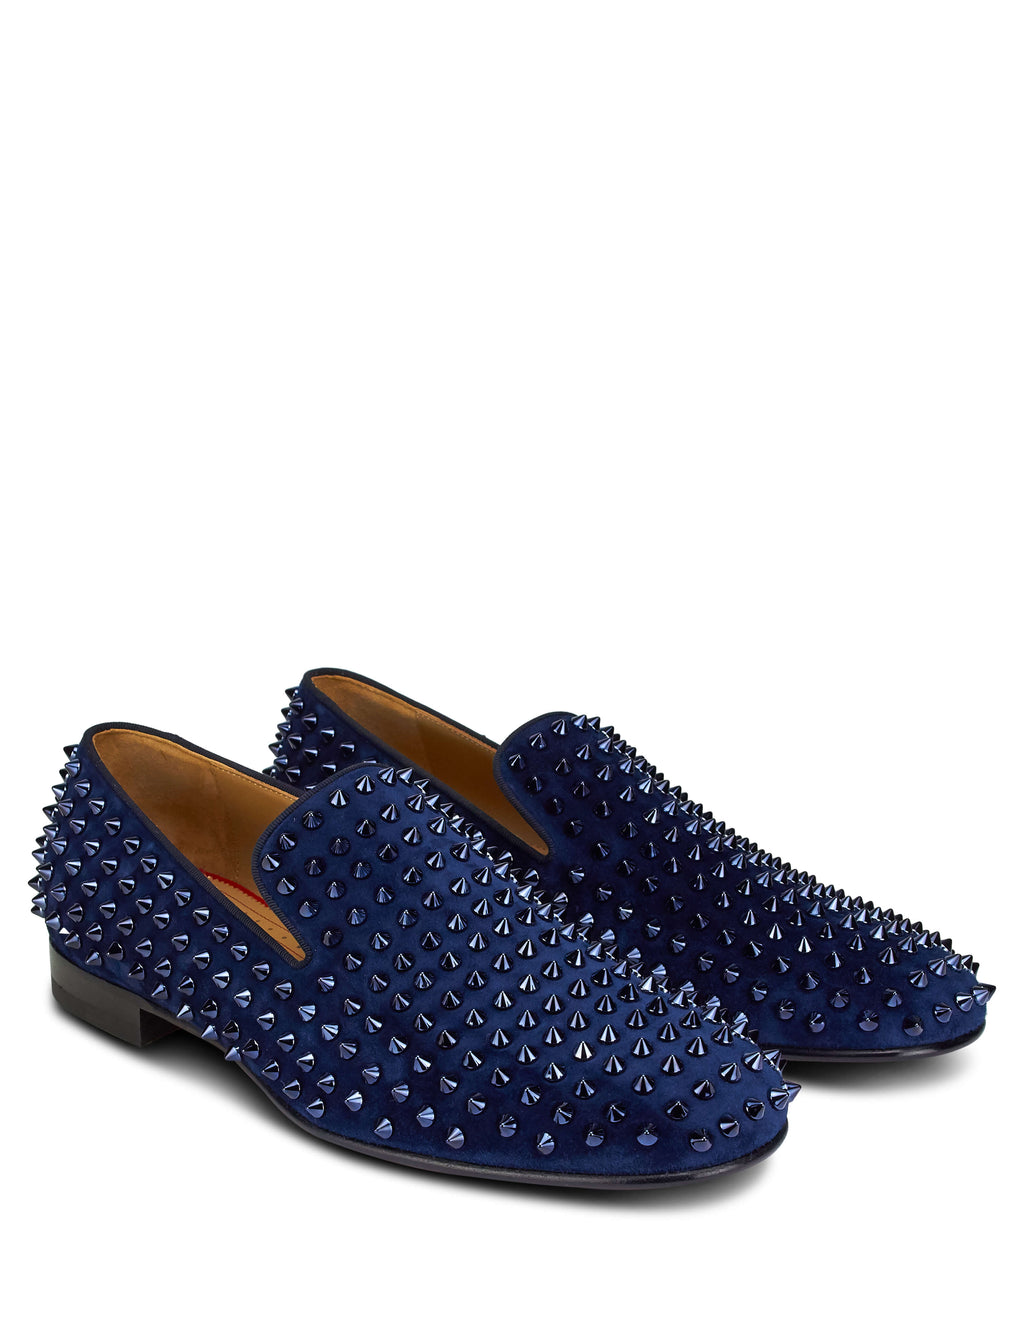 Christian Louboutin Men's Giulio Fashion Navy Rollerboy Spikes Flat Loafers 1120153V088